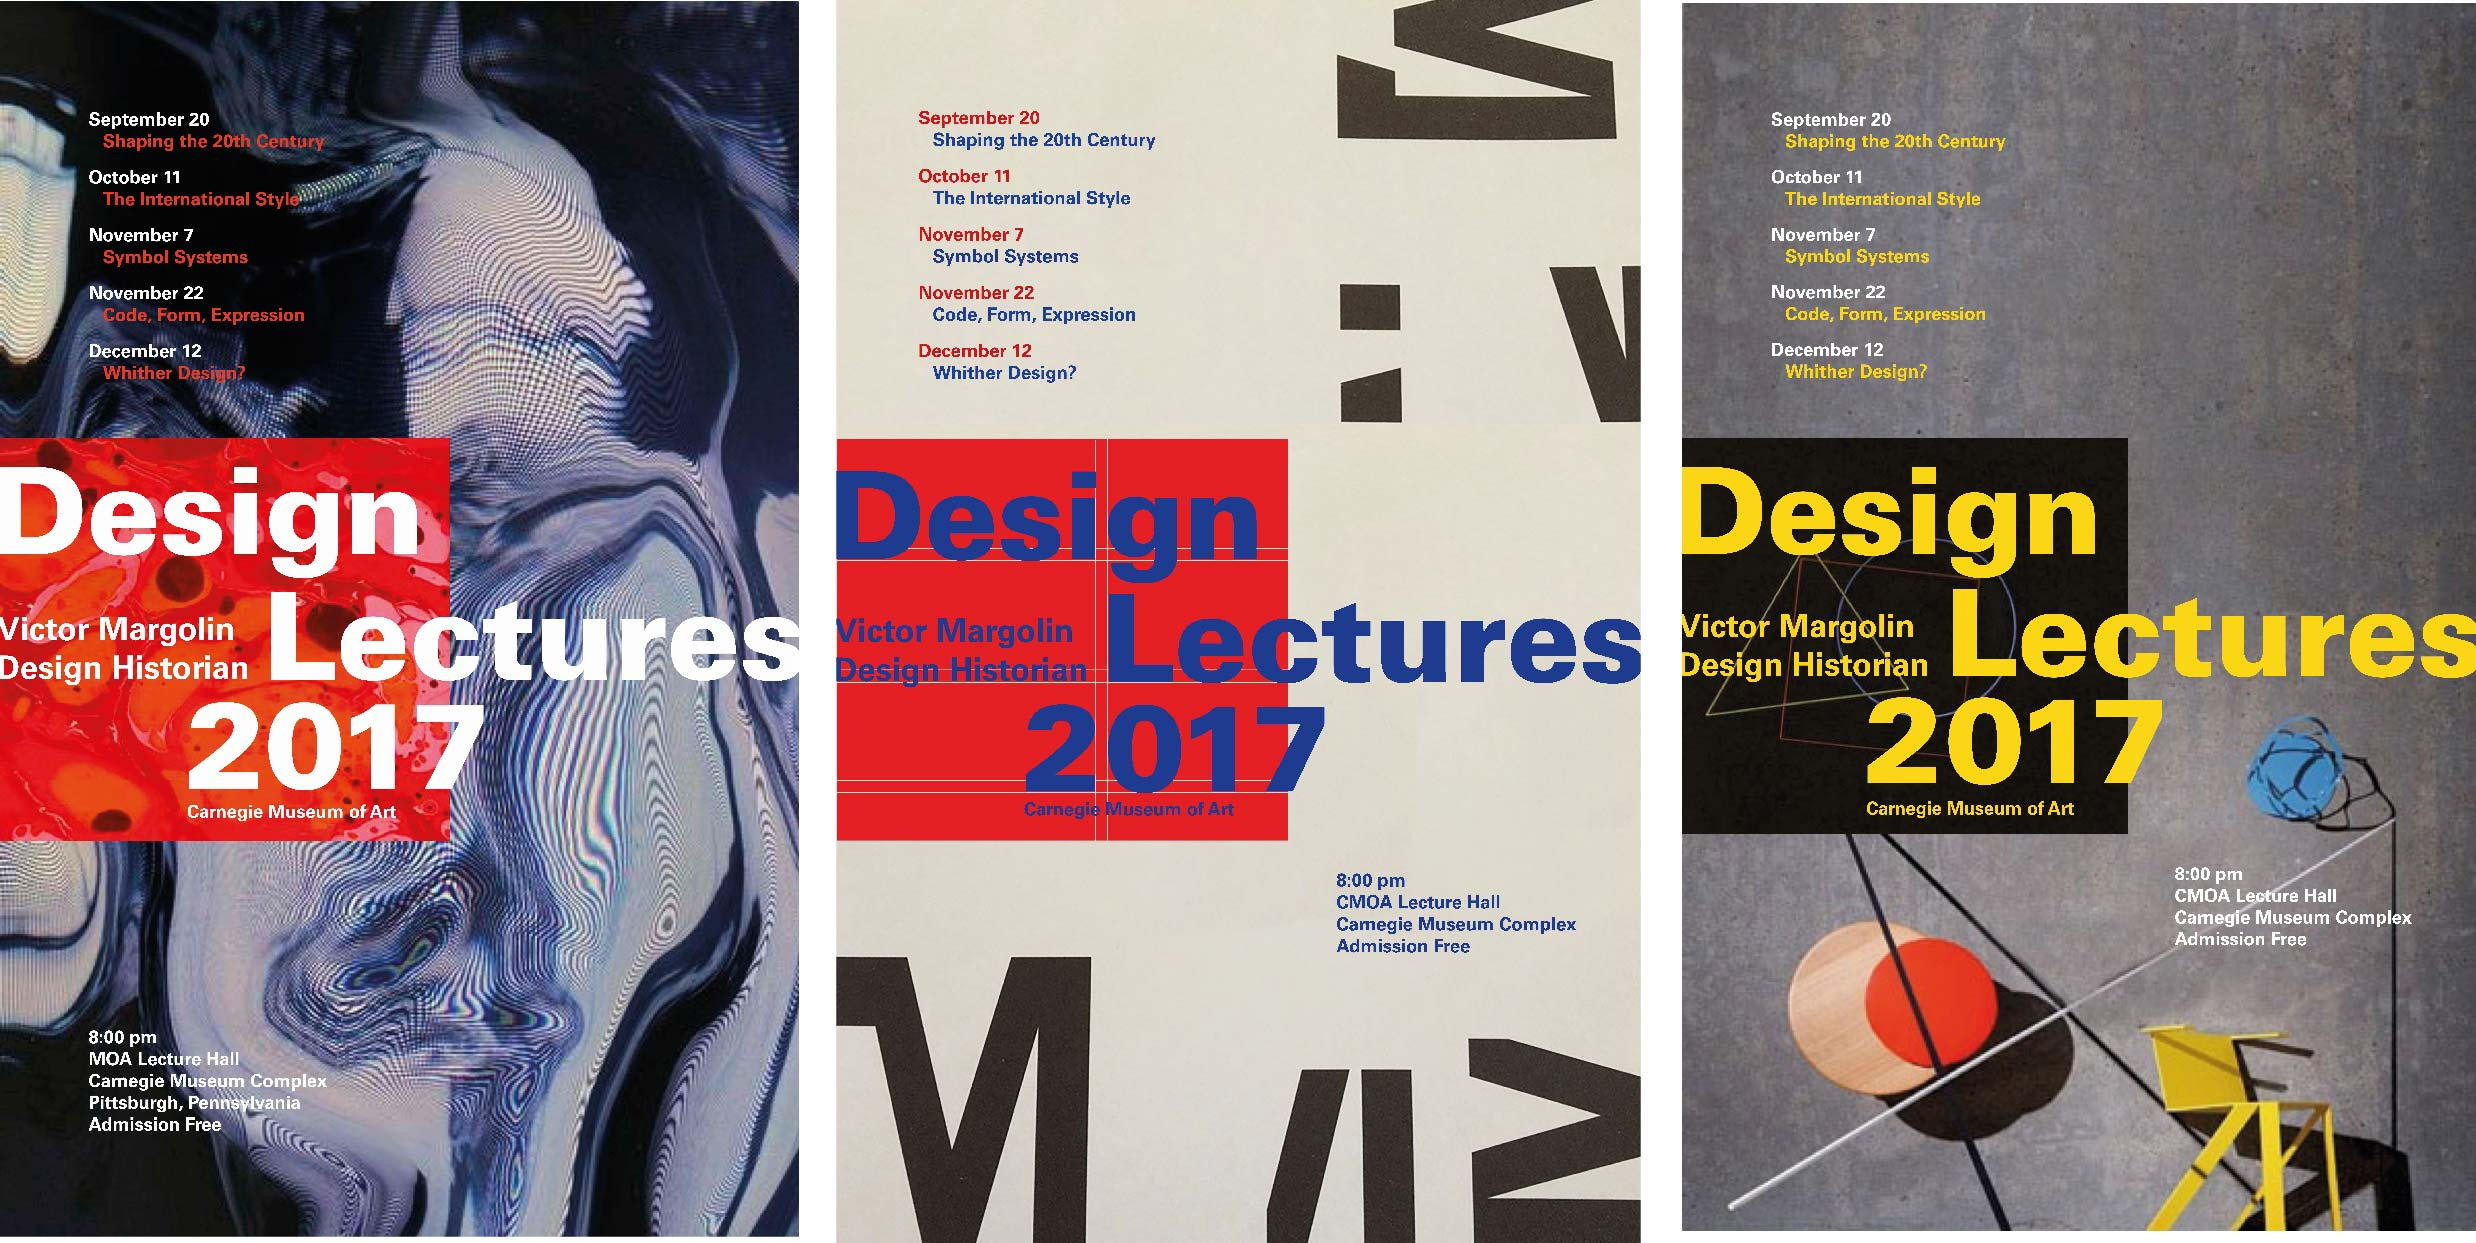 Design Lecture Poster Series: A series of posters was created for the Design Lecture hosted at CMU. I focused on communicating the information effectively by using  hierarchical relationship of typography, images, composition, and color.